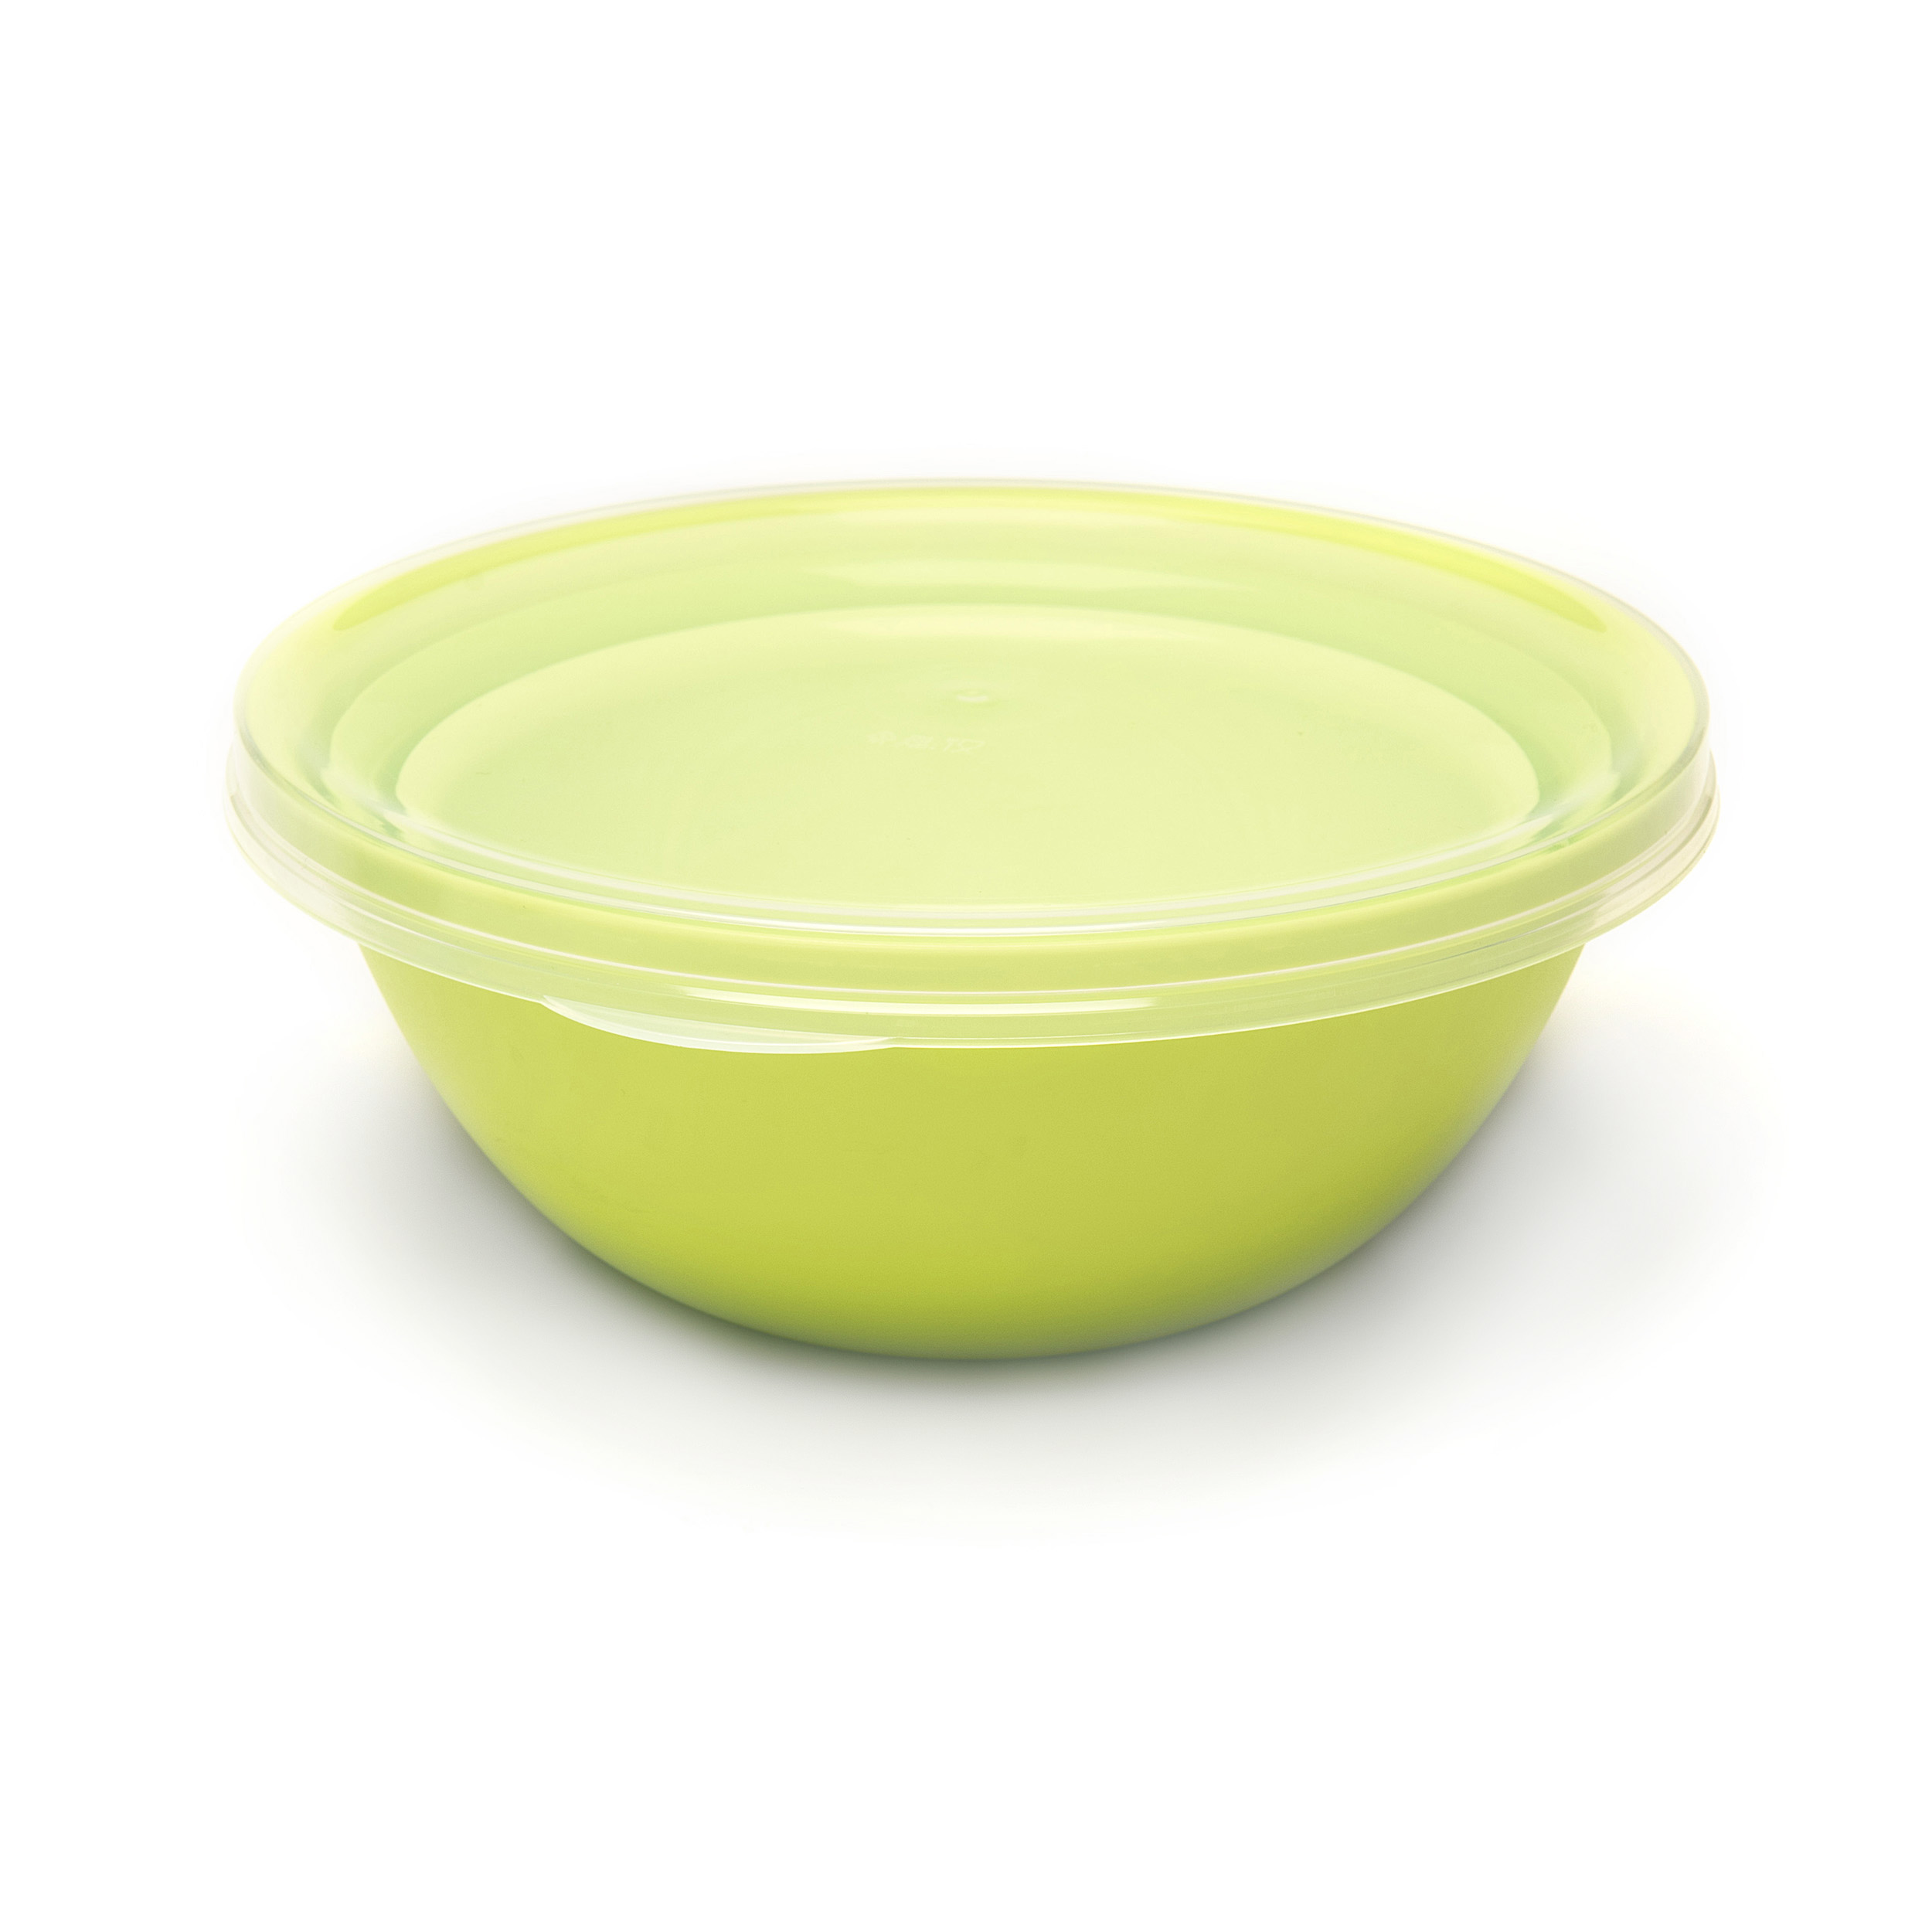 Serving Bowl 3-Pack with Lid - .... These serving bowls are ideal for all occasions. They come in a set of 3 formats: 1200, 1700 and 2400 ml. This makes them easy to stack inside each other, saving you valuable space. Forgotten what you used them for? No worries! Thanks to the transparent lid it is easy to see what's inside. .. Ces saladiers conviennent à chaque occasion. Ils sont disponibles en 3 formats : 1200, 1700 et 2400 ml. Faciles donc à empiler avec, à la clé, un fameux gain de place. Vous avez oublié ce que vous y avez mis précisément ? Inutile de l'ouvrir : un seul coup d'œil à travers le couvercle transparent et vous êtes fixé(e). .. Deze serveerkommen zijn geknipt voor elke gelegenheid. Je krijgt ze in 3 formaten: 1200, 1700 en 2400 ml. Daardoor zet je ze gemakkelijk in elkaar en bespaar je plek. Vergeten wat je er precies instopte? Dankzij het doorzichtige deksel heb je aan een snelle blik genoeg. .. Diese Servierschüsseln eignen sich für jede Gelegenheit. Sie sind in 3 Formaten erhältlich: 1200, 1700 und 2400 ml. Dadurch lassen sie sich einfach stapeln und sparen Platz. Vergessen, was Sie darin aufbewahrt haben? Dank des durchsichtigen Deckels können Sie sich mit einem Blick überzeugen. ....